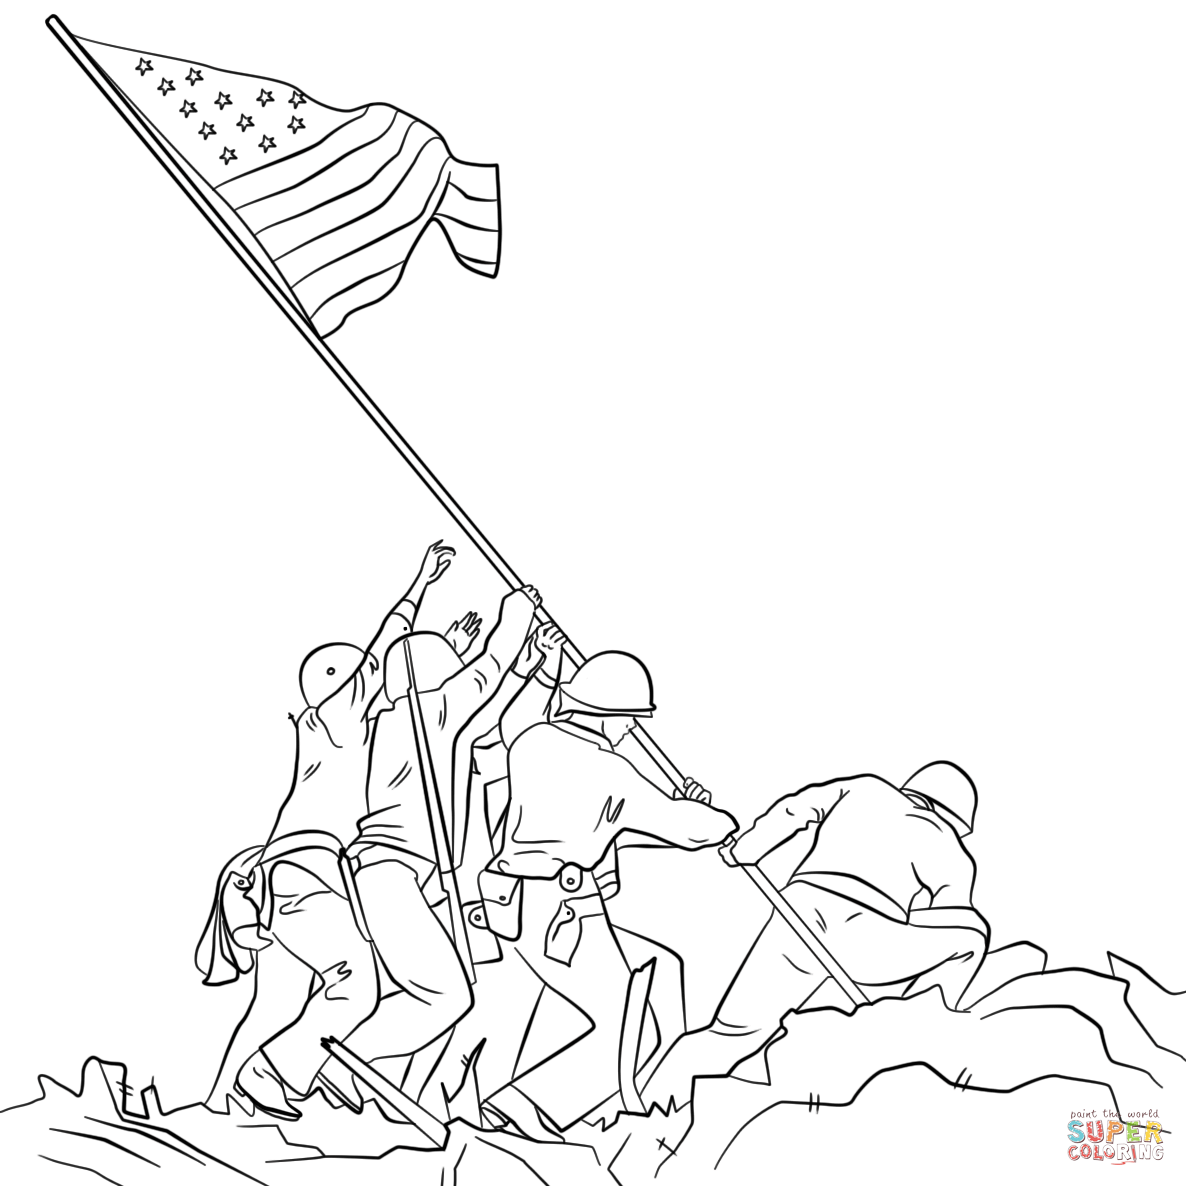 1186x1186 World War 2 Coloring Pages Free Coloring Pages